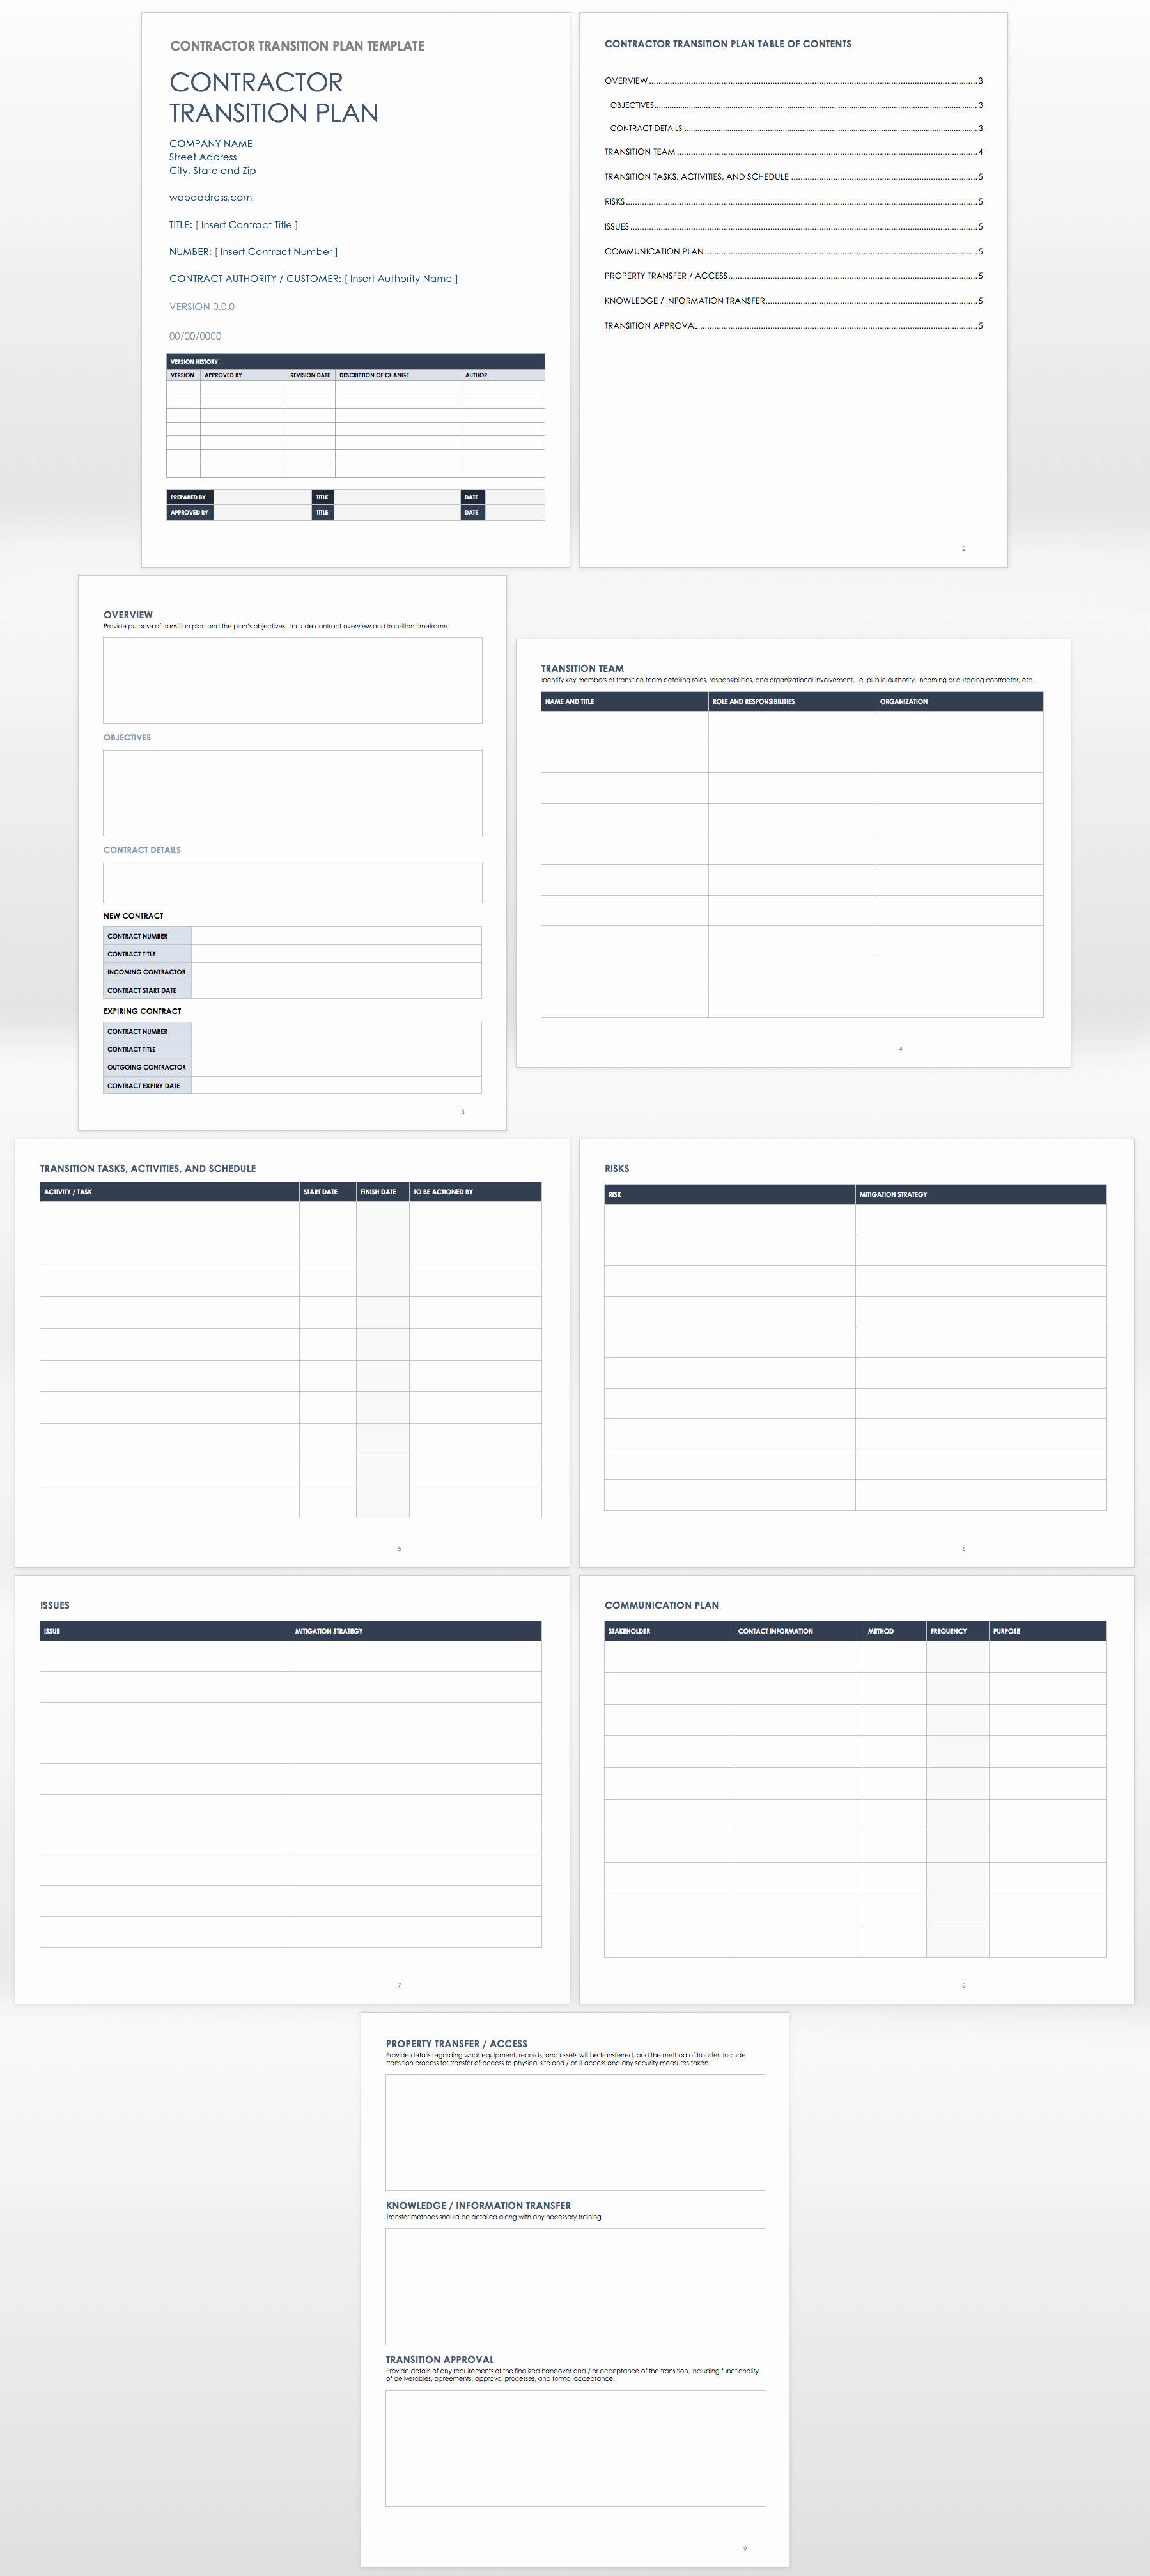 Knowledge Transition Plan Template Inspirational Free Business Transition Plan Templates